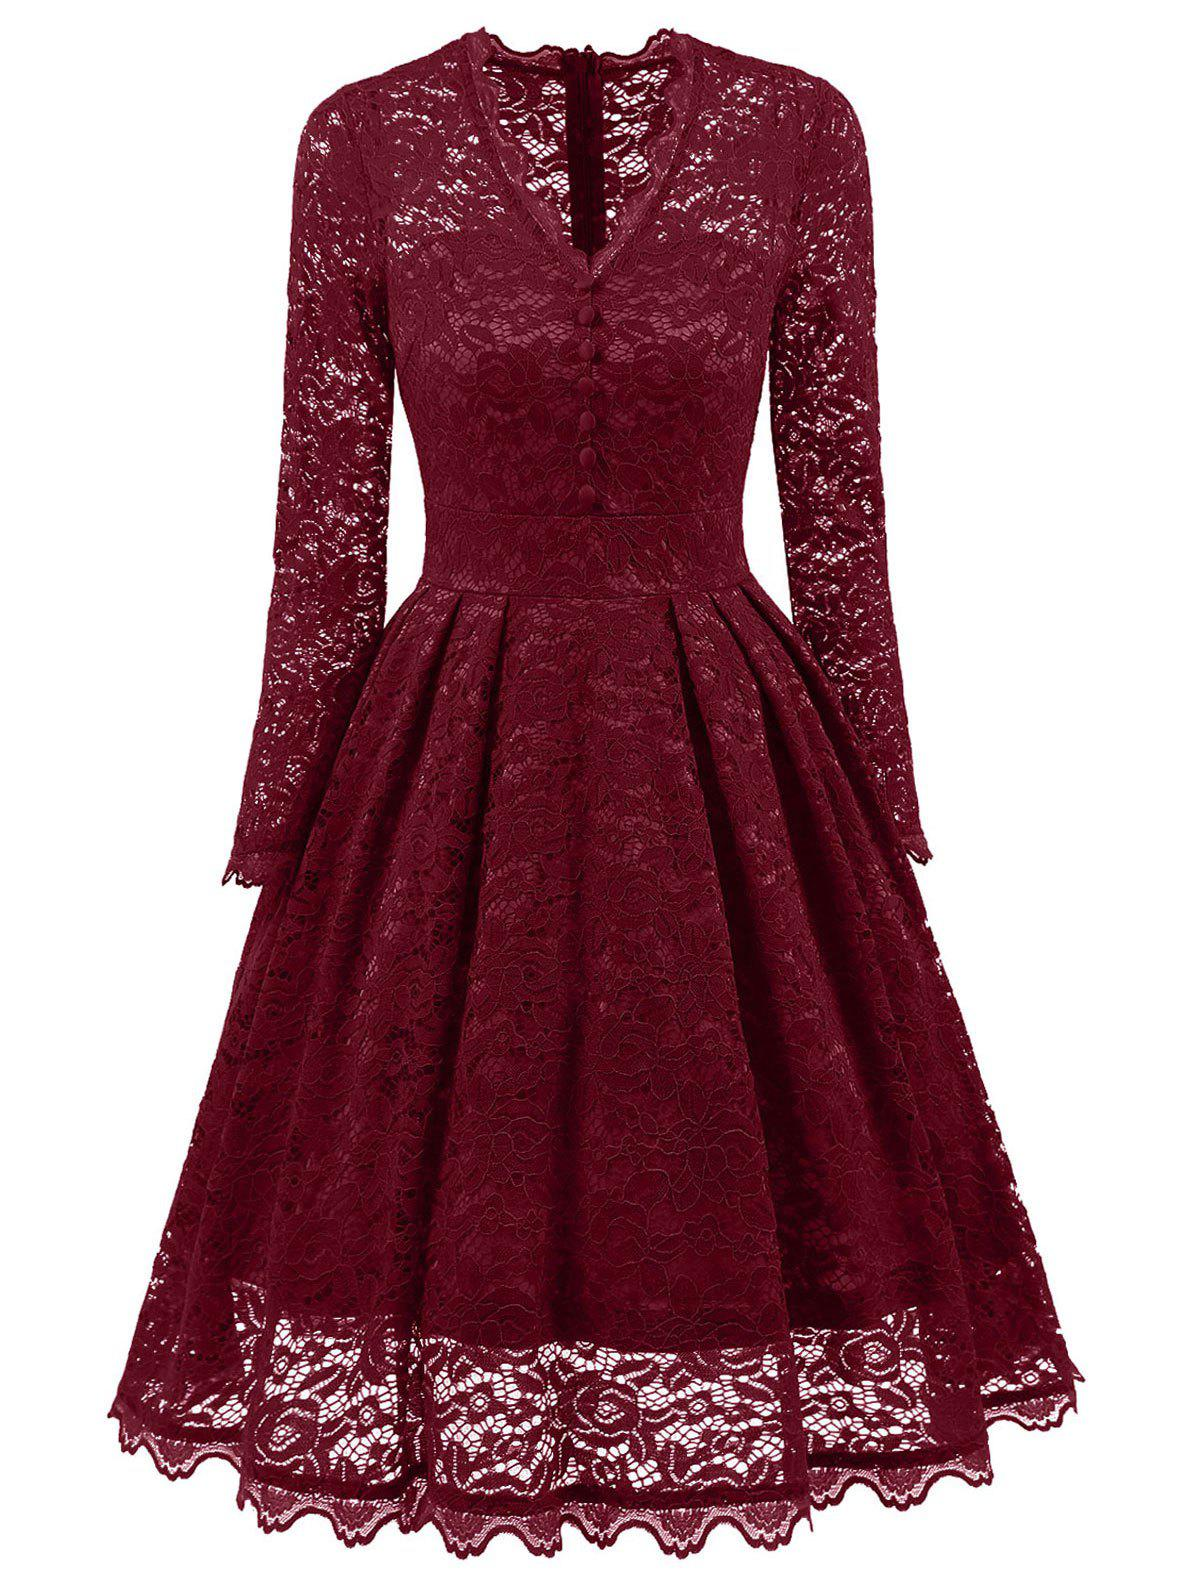 V-neck Lace Party Vintage A Line DressWOMEN<br><br>Size: XL; Color: WINE RED; Style: Vintage; Material: Polyester; Silhouette: A-Line; Dresses Length: Knee-Length; Neckline: V-Neck; Sleeve Length: Long Sleeves; Embellishment: Lace; Pattern Type: Solid; With Belt: No; Season: Fall,Spring; Weight: 0.4900kg; Package Contents: 1 x Dress;